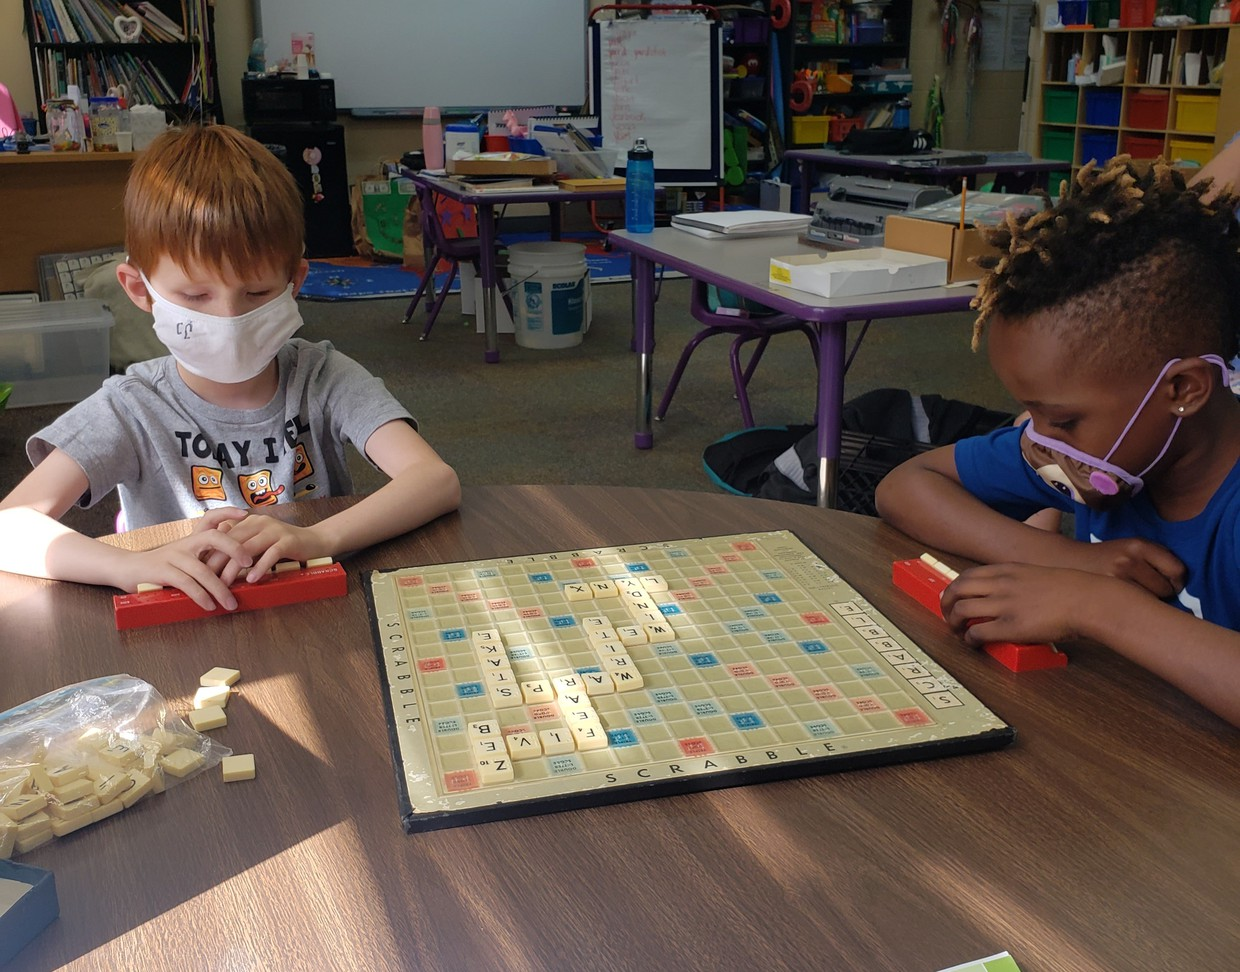 2 students sit at a table playing Scrabble. Some of the words they've used are five, zeb, and warps